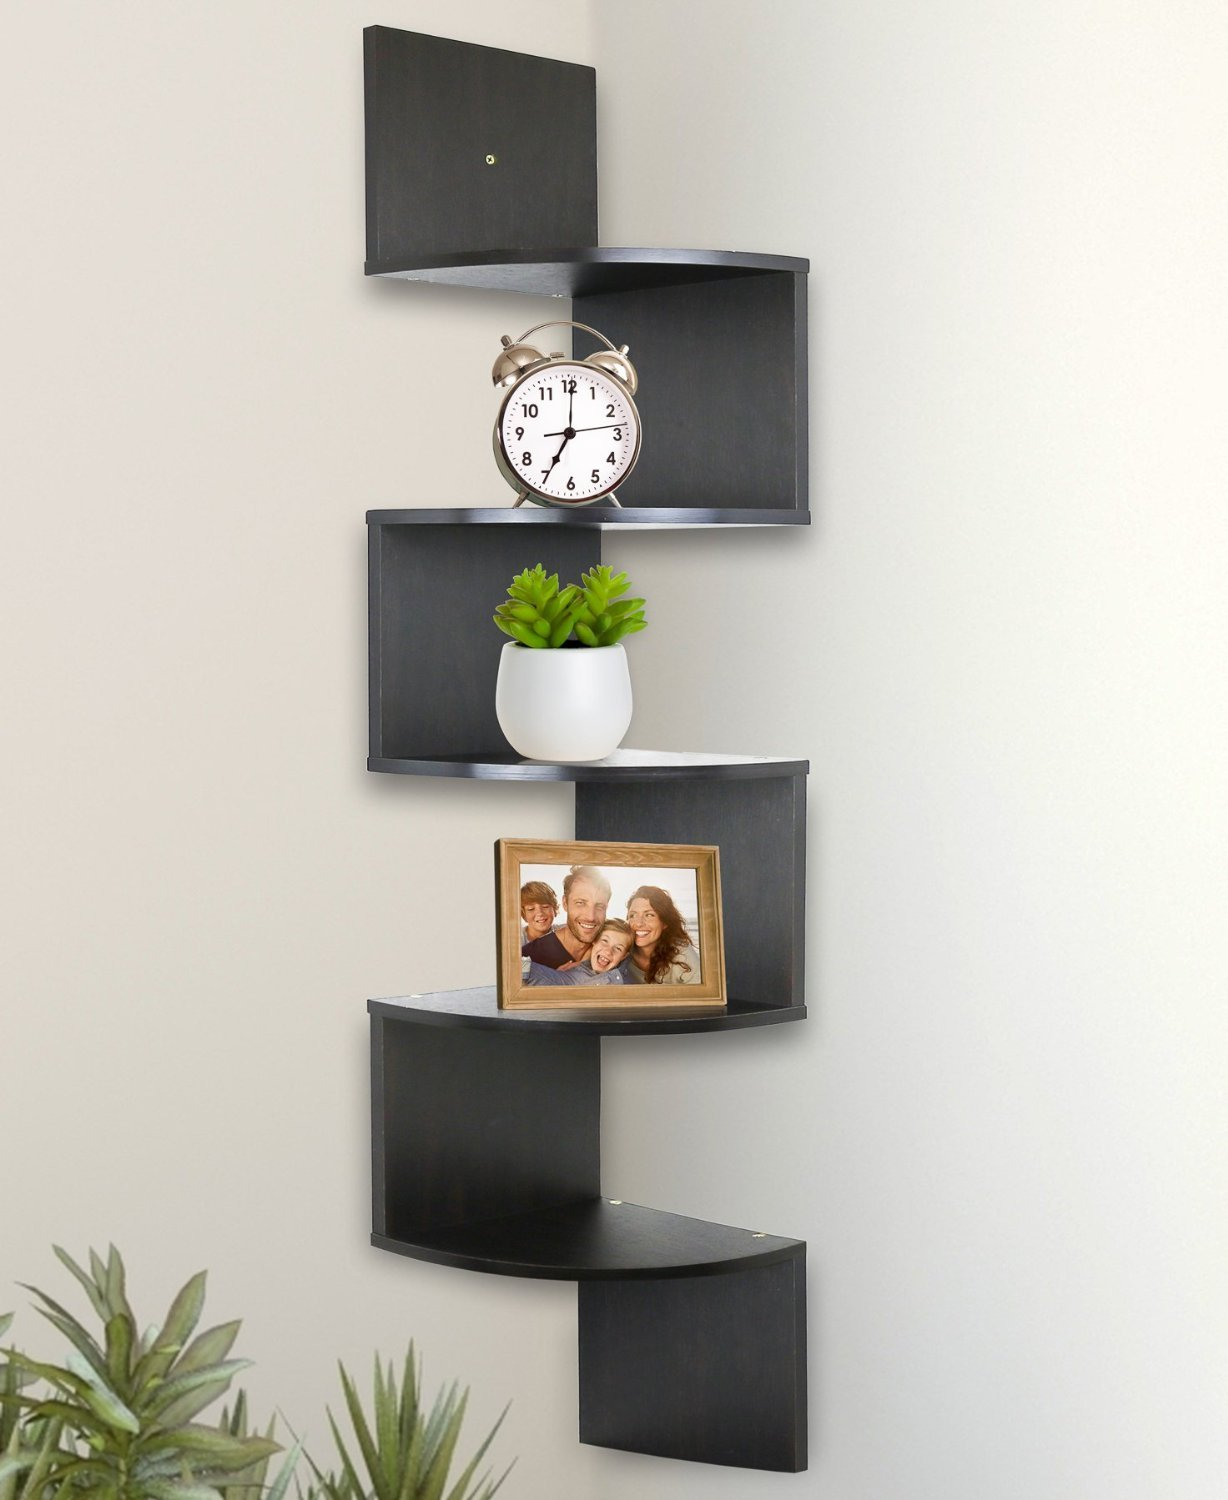 Greenco 5 Tier Wall Mount Corner Shelves Espresso Finish by Greenco